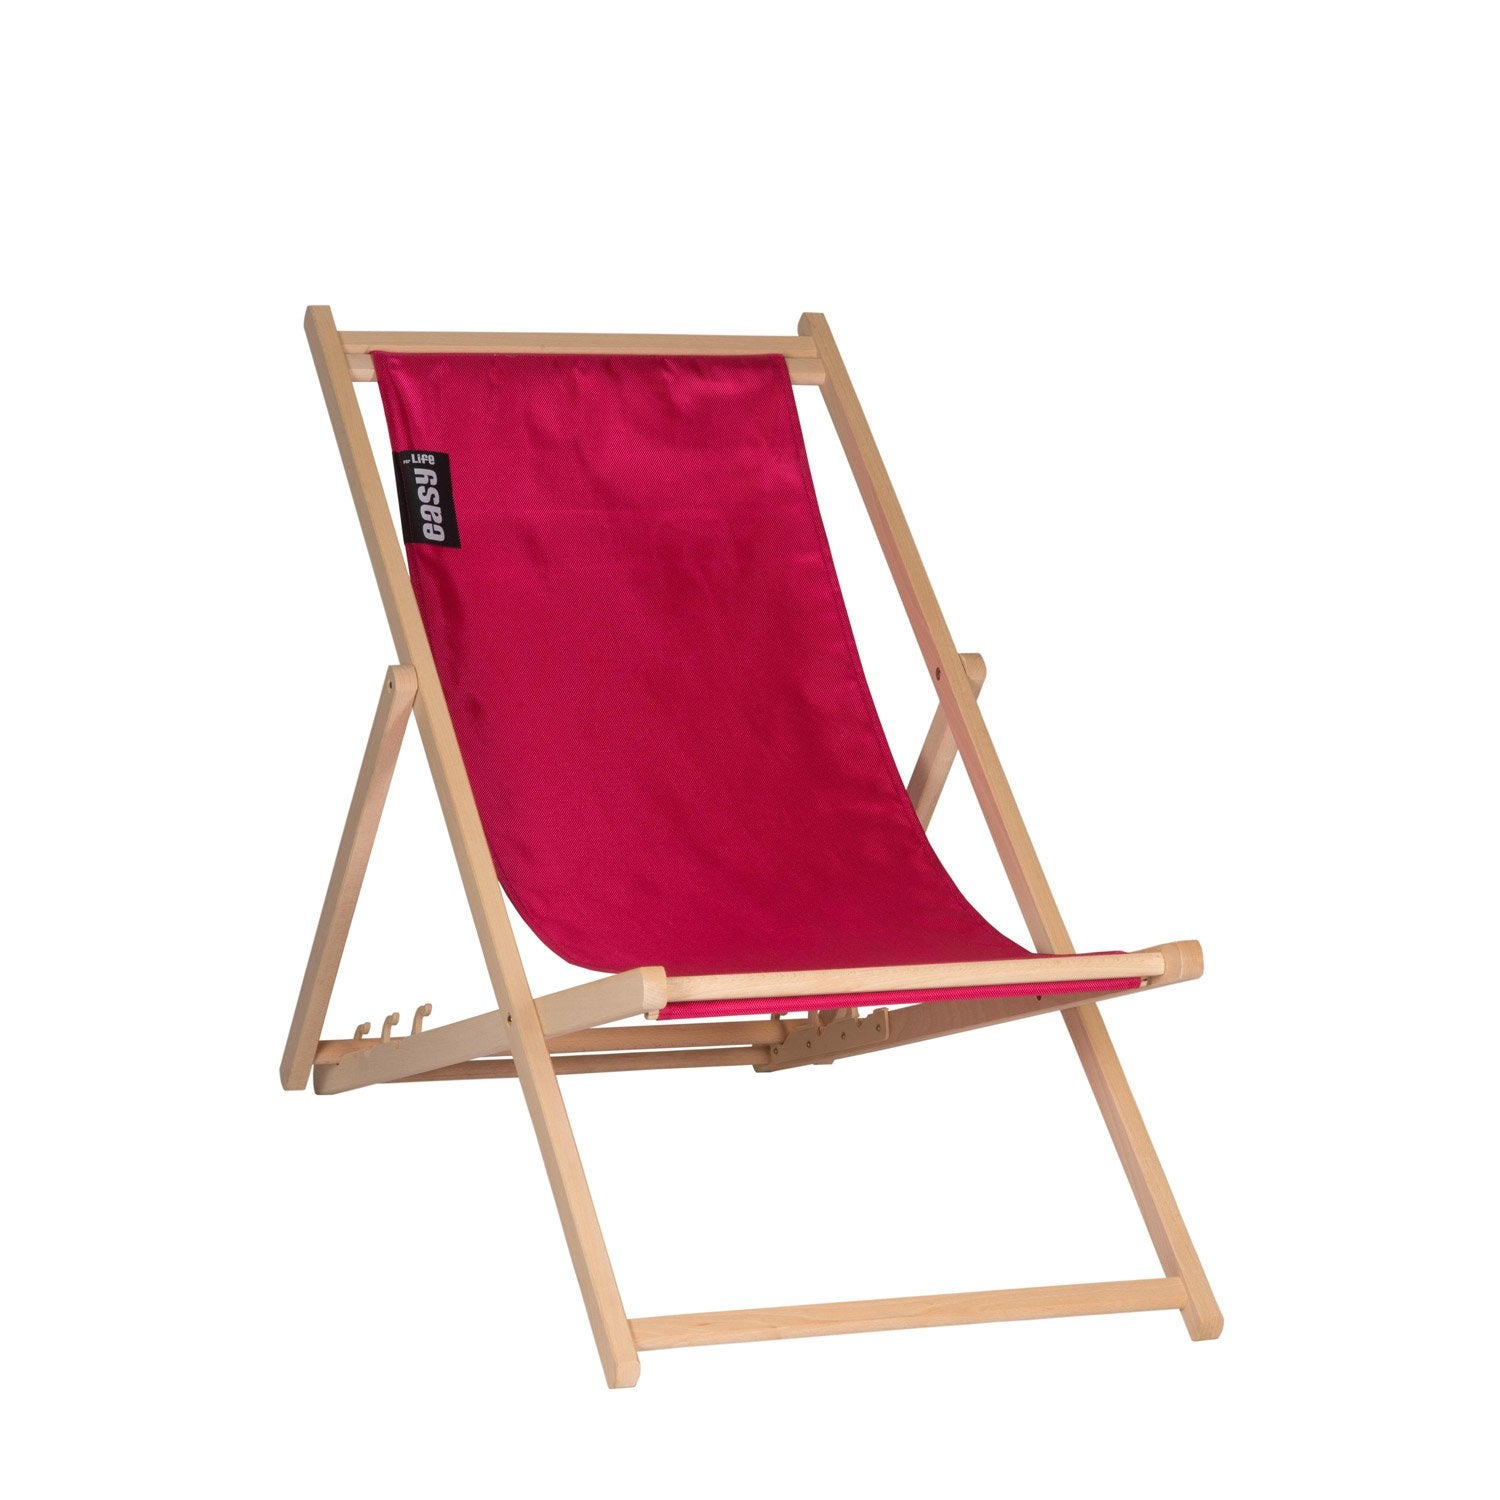 Chaise longue chilienne leroy merlin - Leroy merlin chaise jardin ...